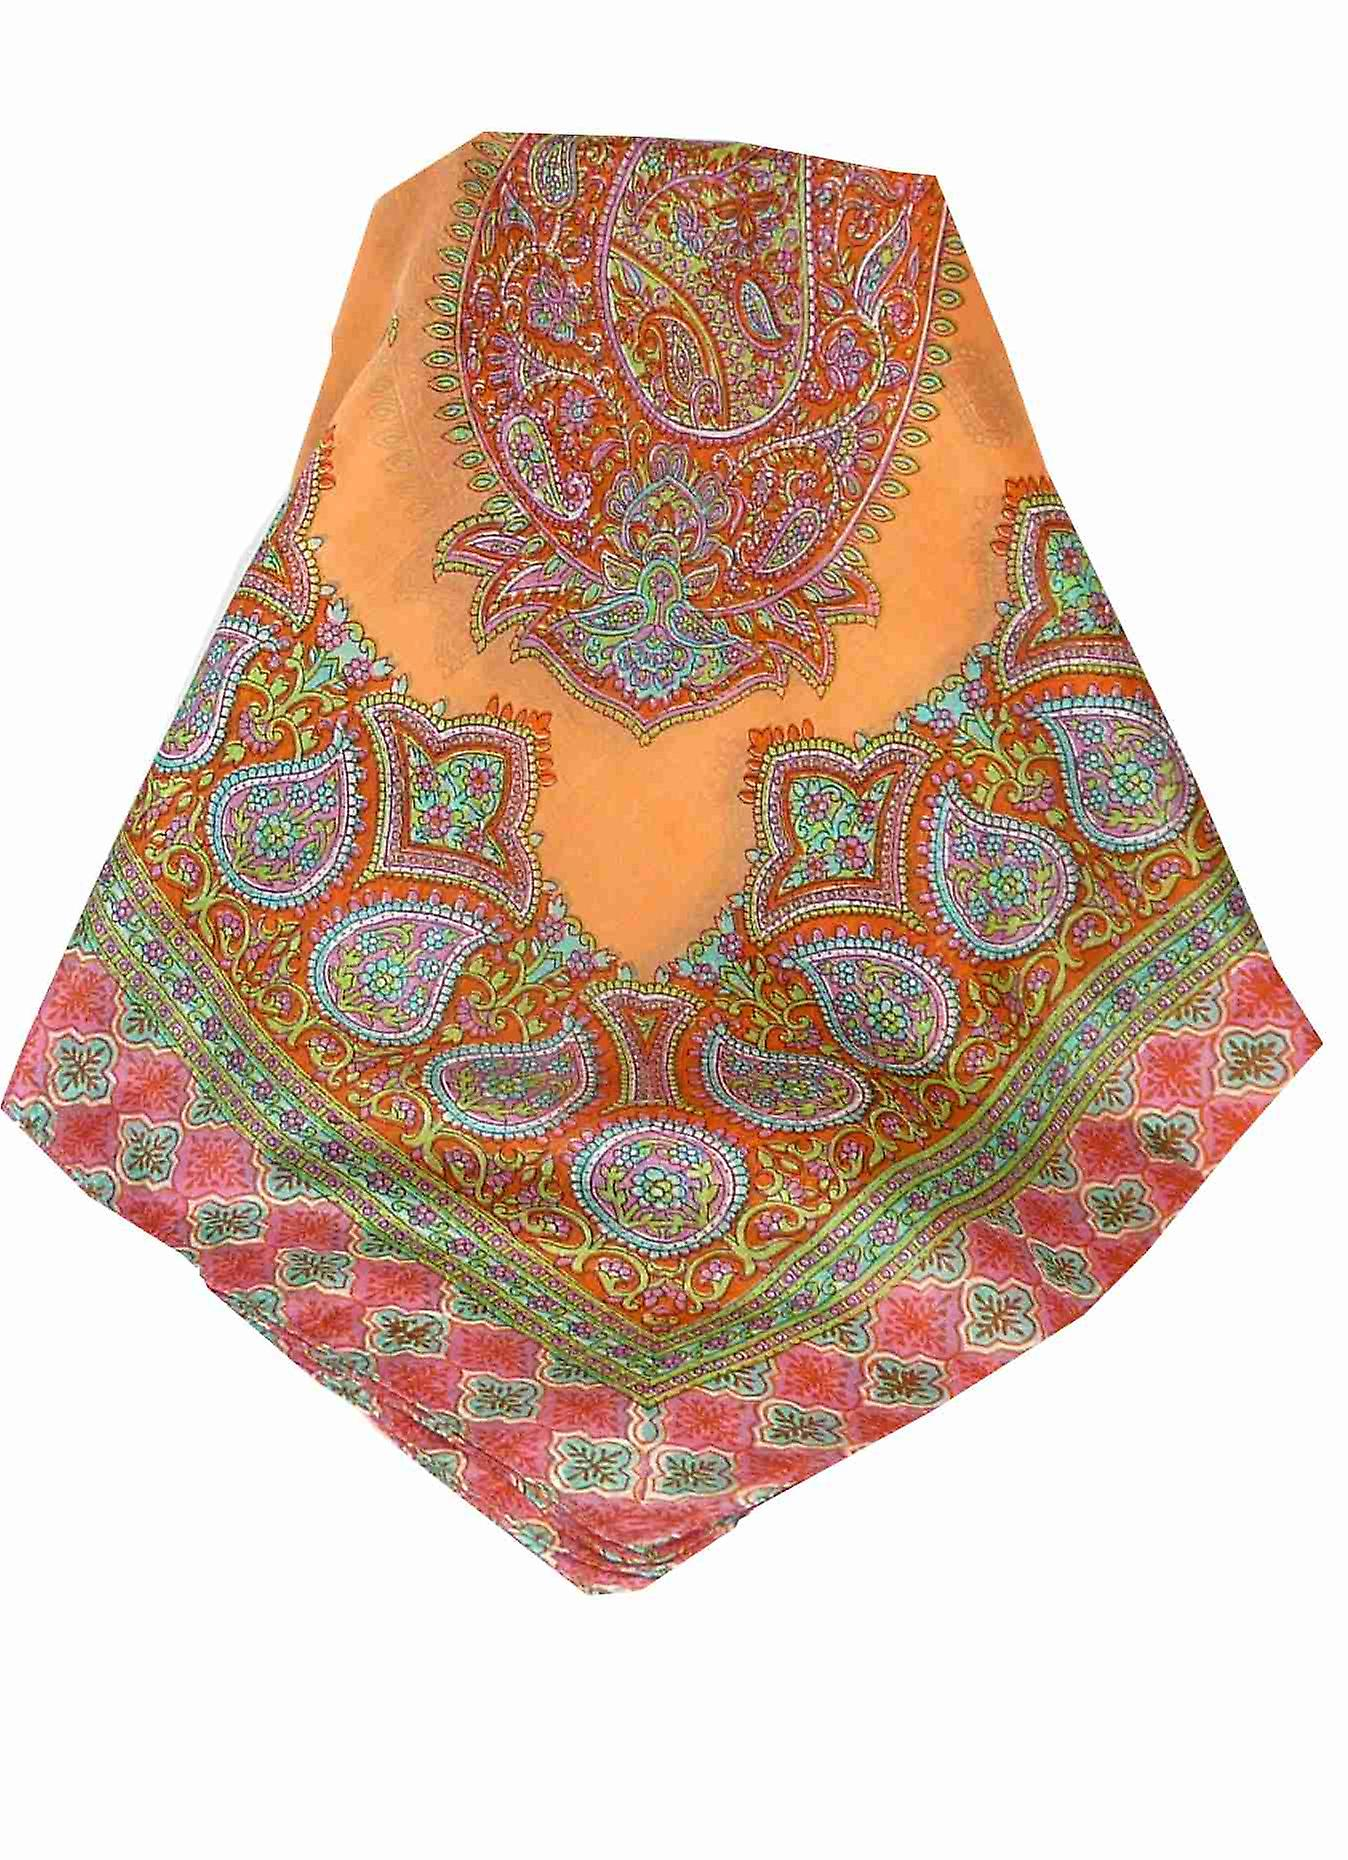 Mulberry Silk Traditional Square Scarf Andrha Nectarine by Pashmina & Silk